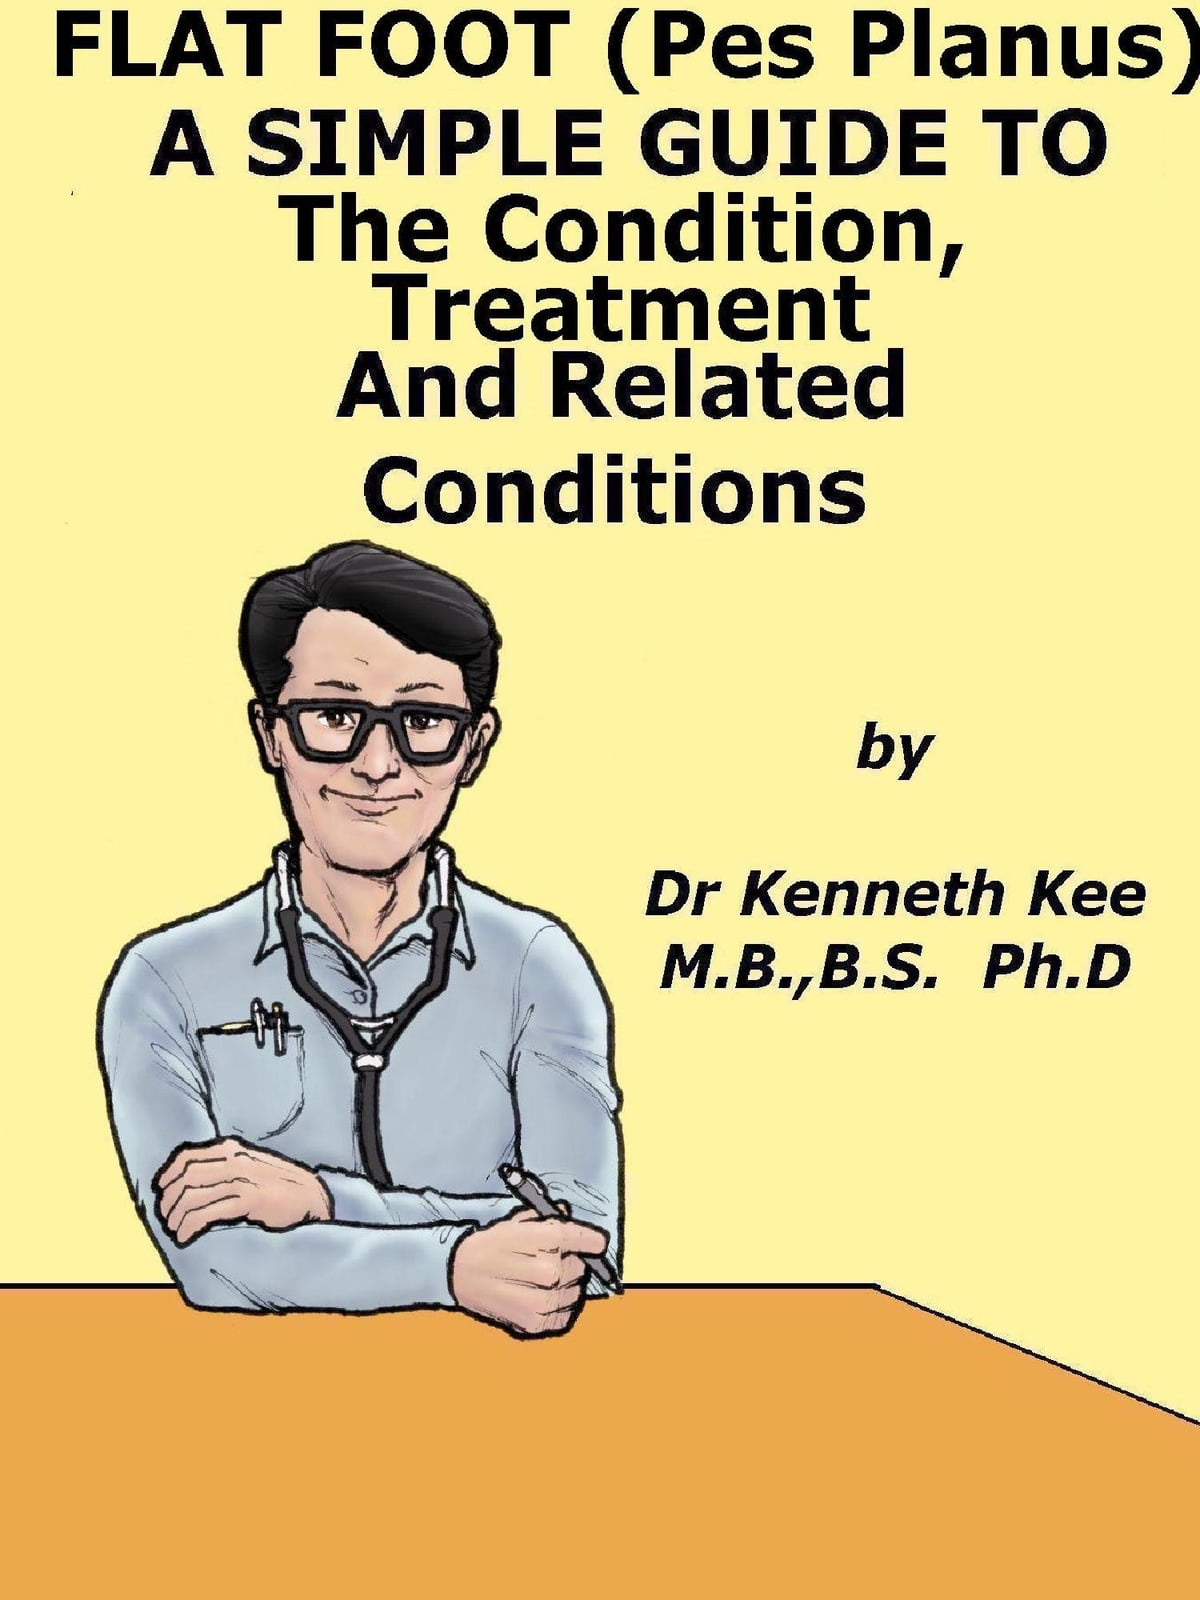 Flat Foot (Pes Planus), A Simple Guide to The Condition, Treatment And  Related Conditions eBook by Kenneth Kee - Rakuten Kobo